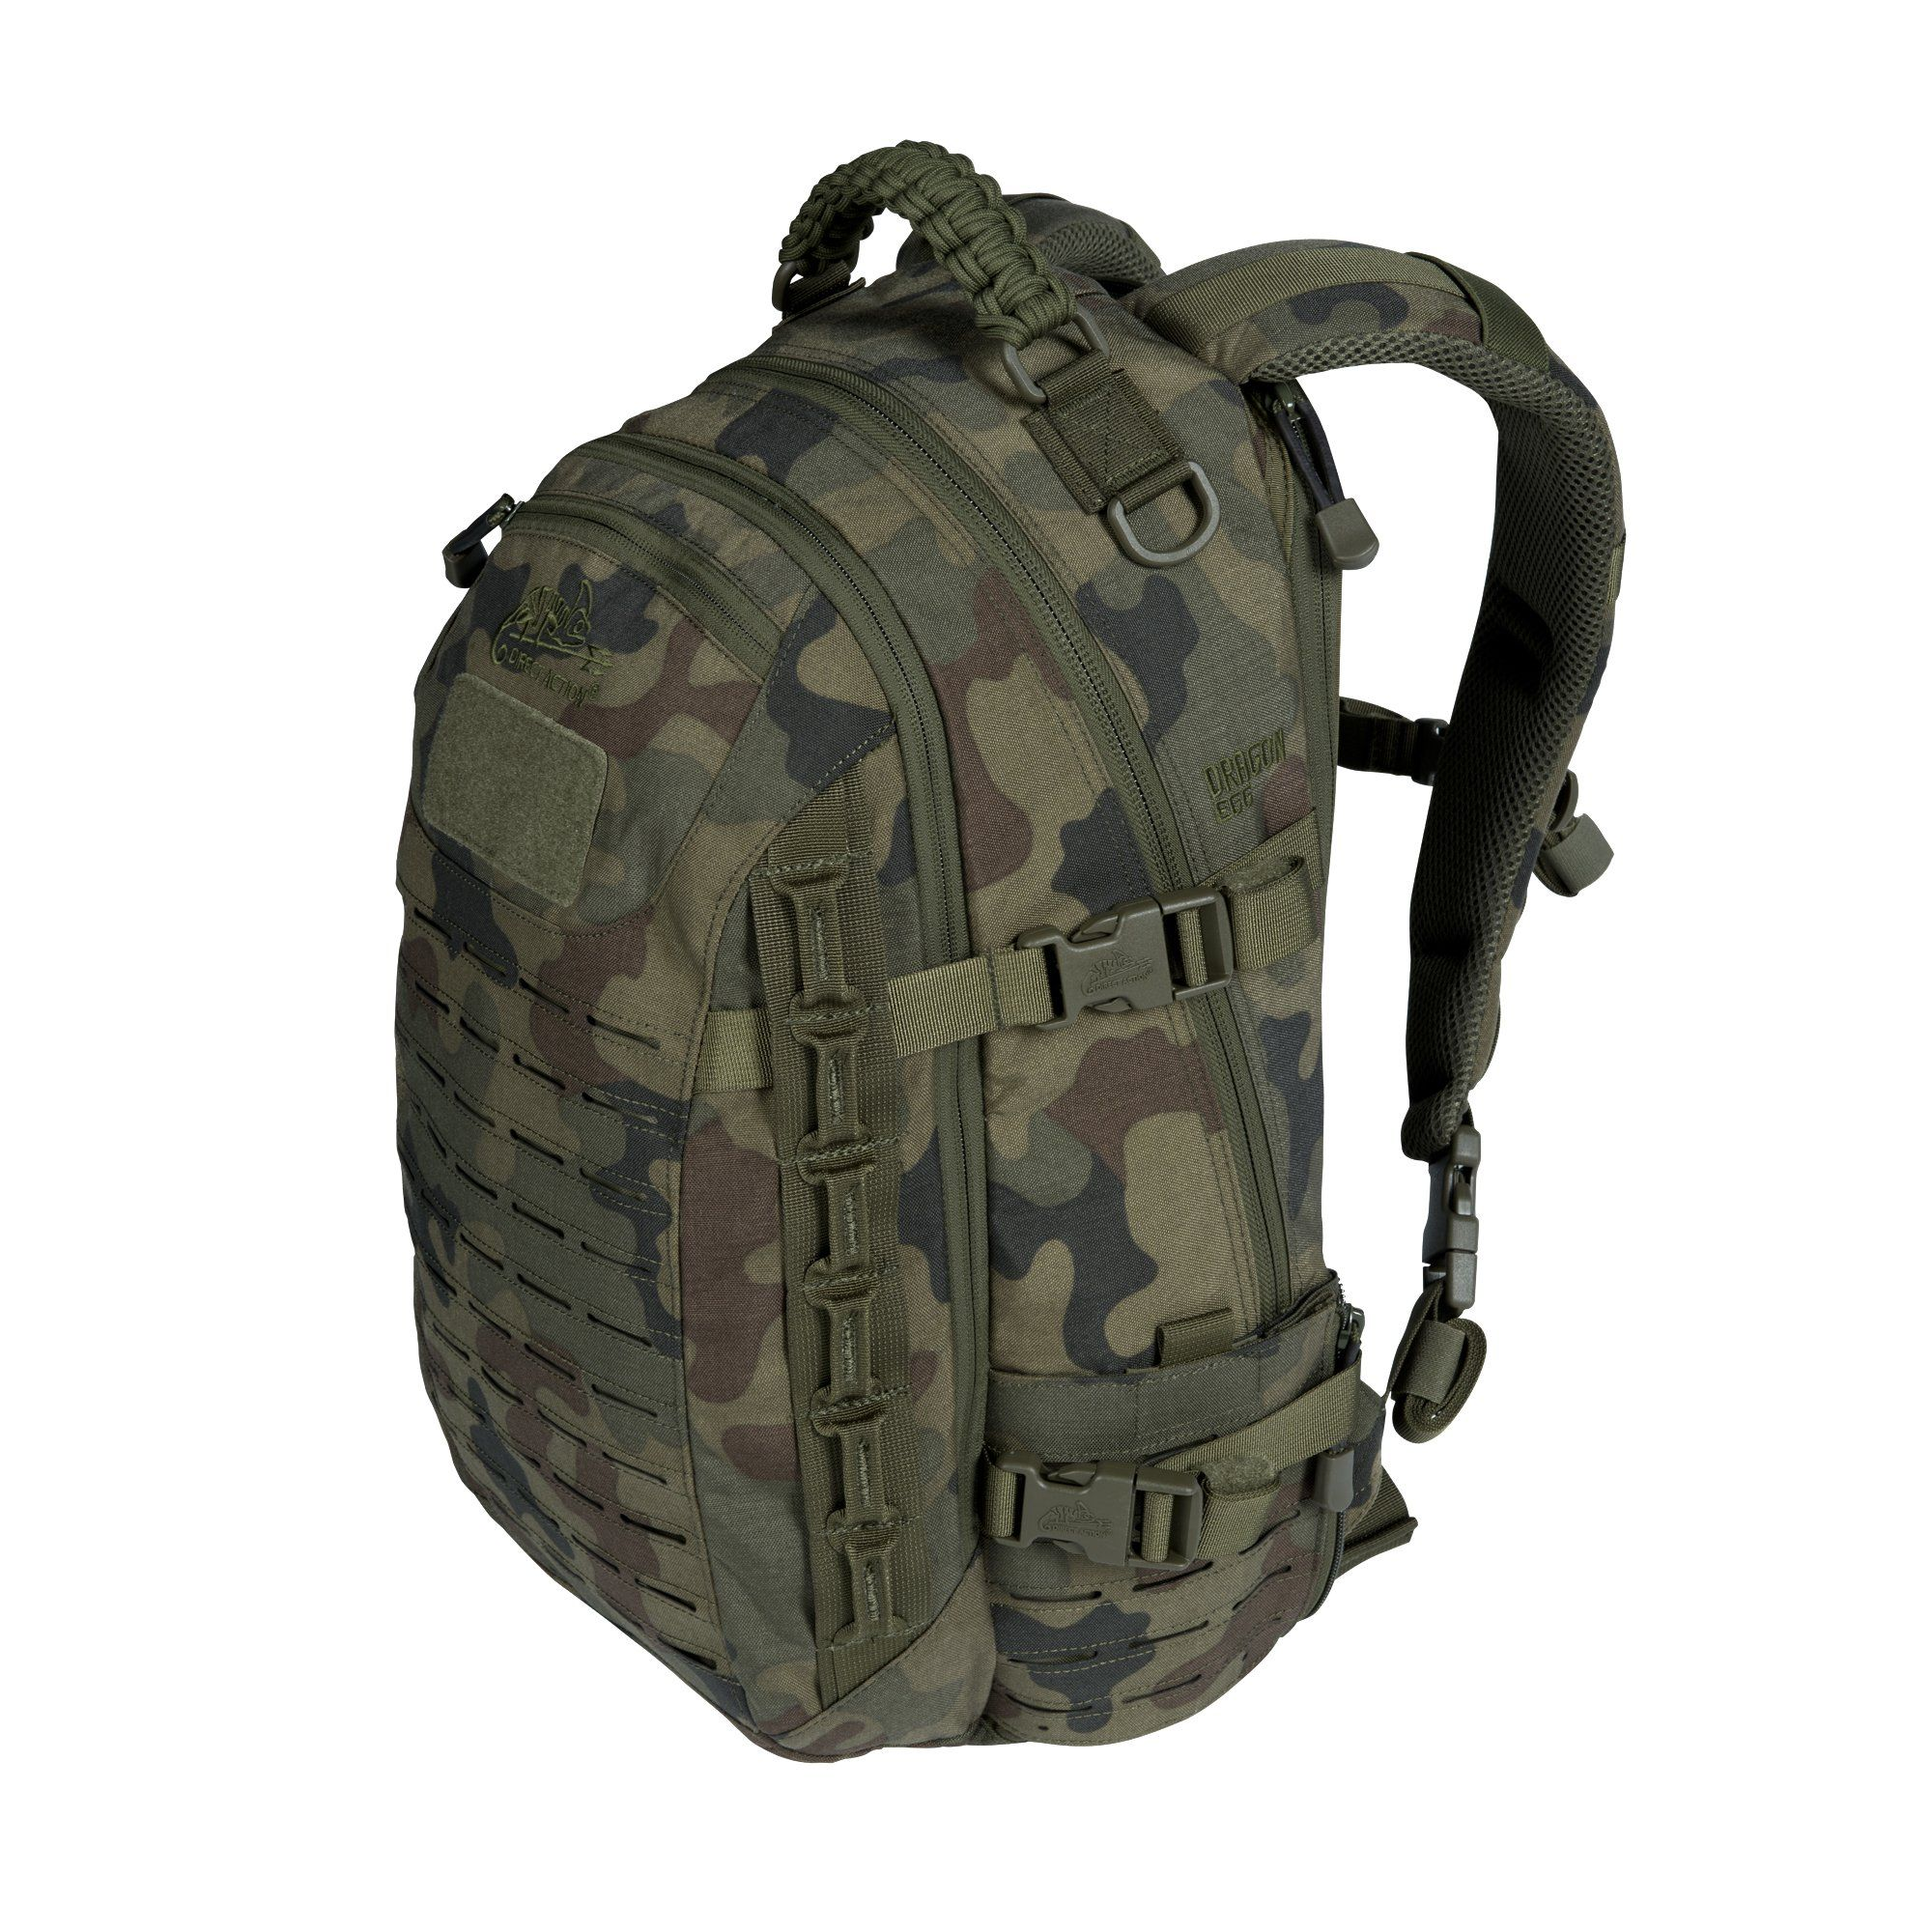 517924cbc243 Direct Action Dragon Egg Tactical Backpack Polish Woodland. Lightweight and  versatile 2-day backpack designed for advanced Military & Law Enforcement  ...